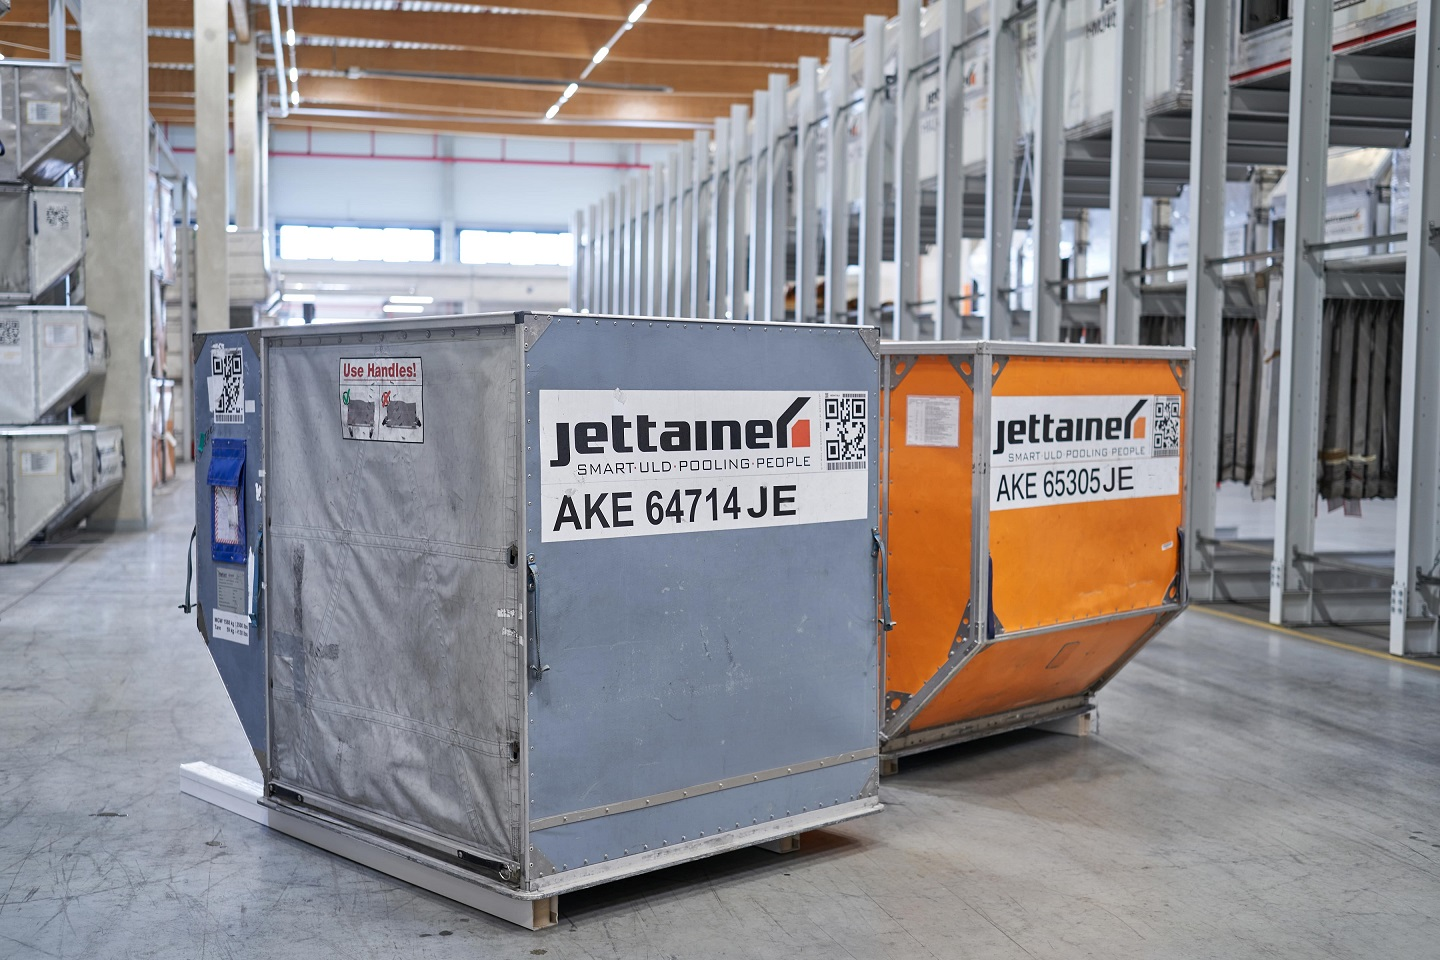 Jettainer experiencing growing demand for leasing services